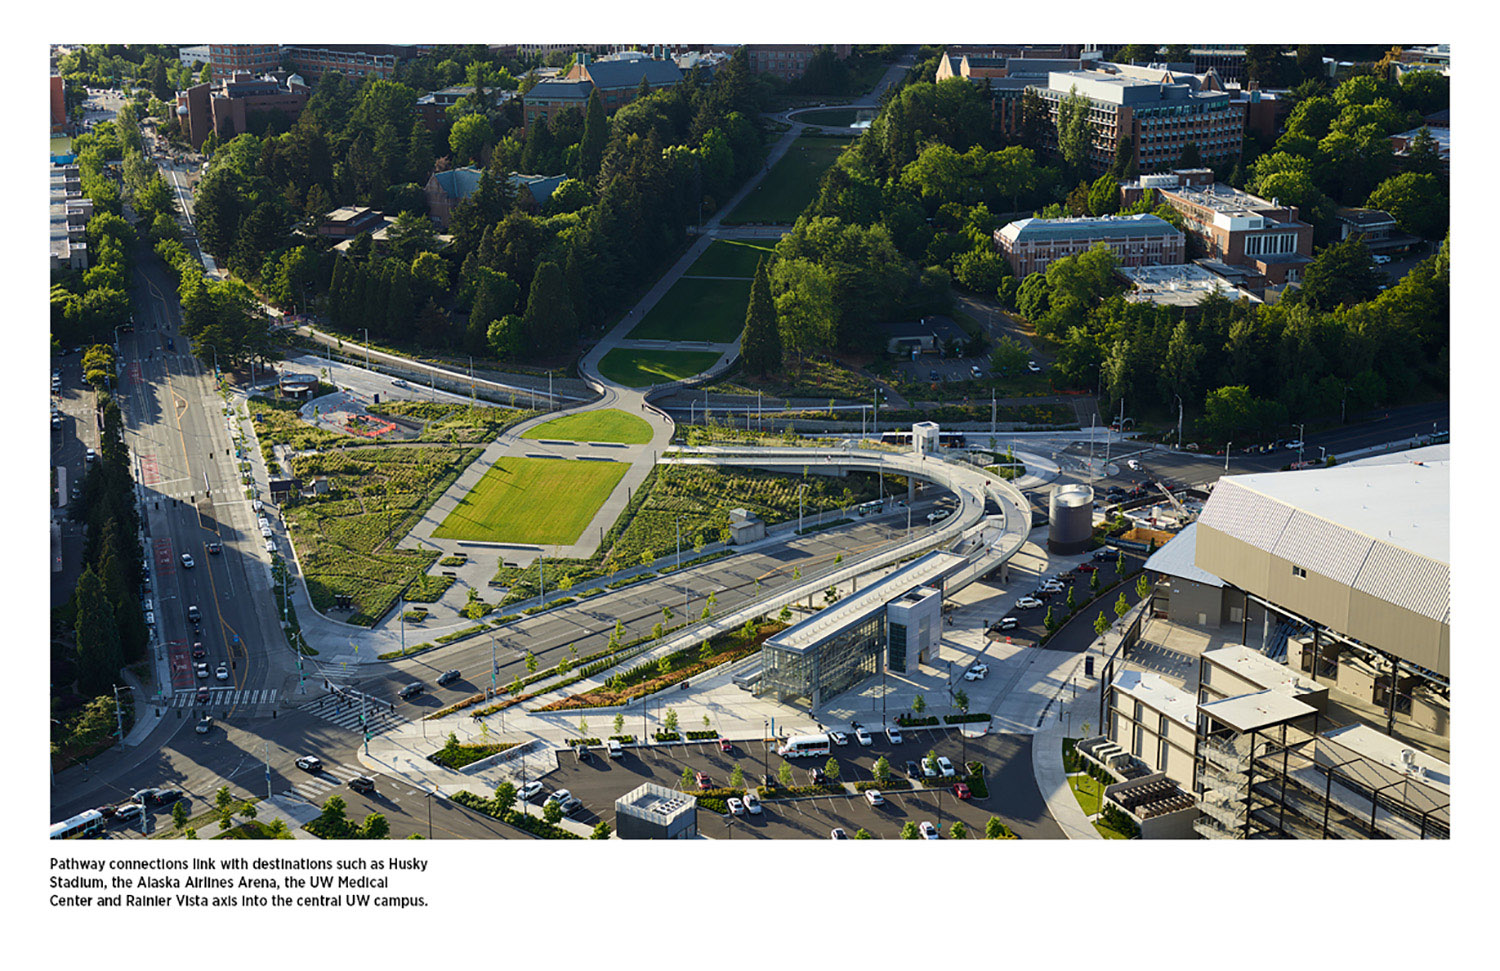 Pathway connections link with destinations such as Husky Stadium, the Alaska Airlines Arena, the UW Medical Center, and Mt. Rainier Vista axis into the center of the UW campus. Kevin Scott